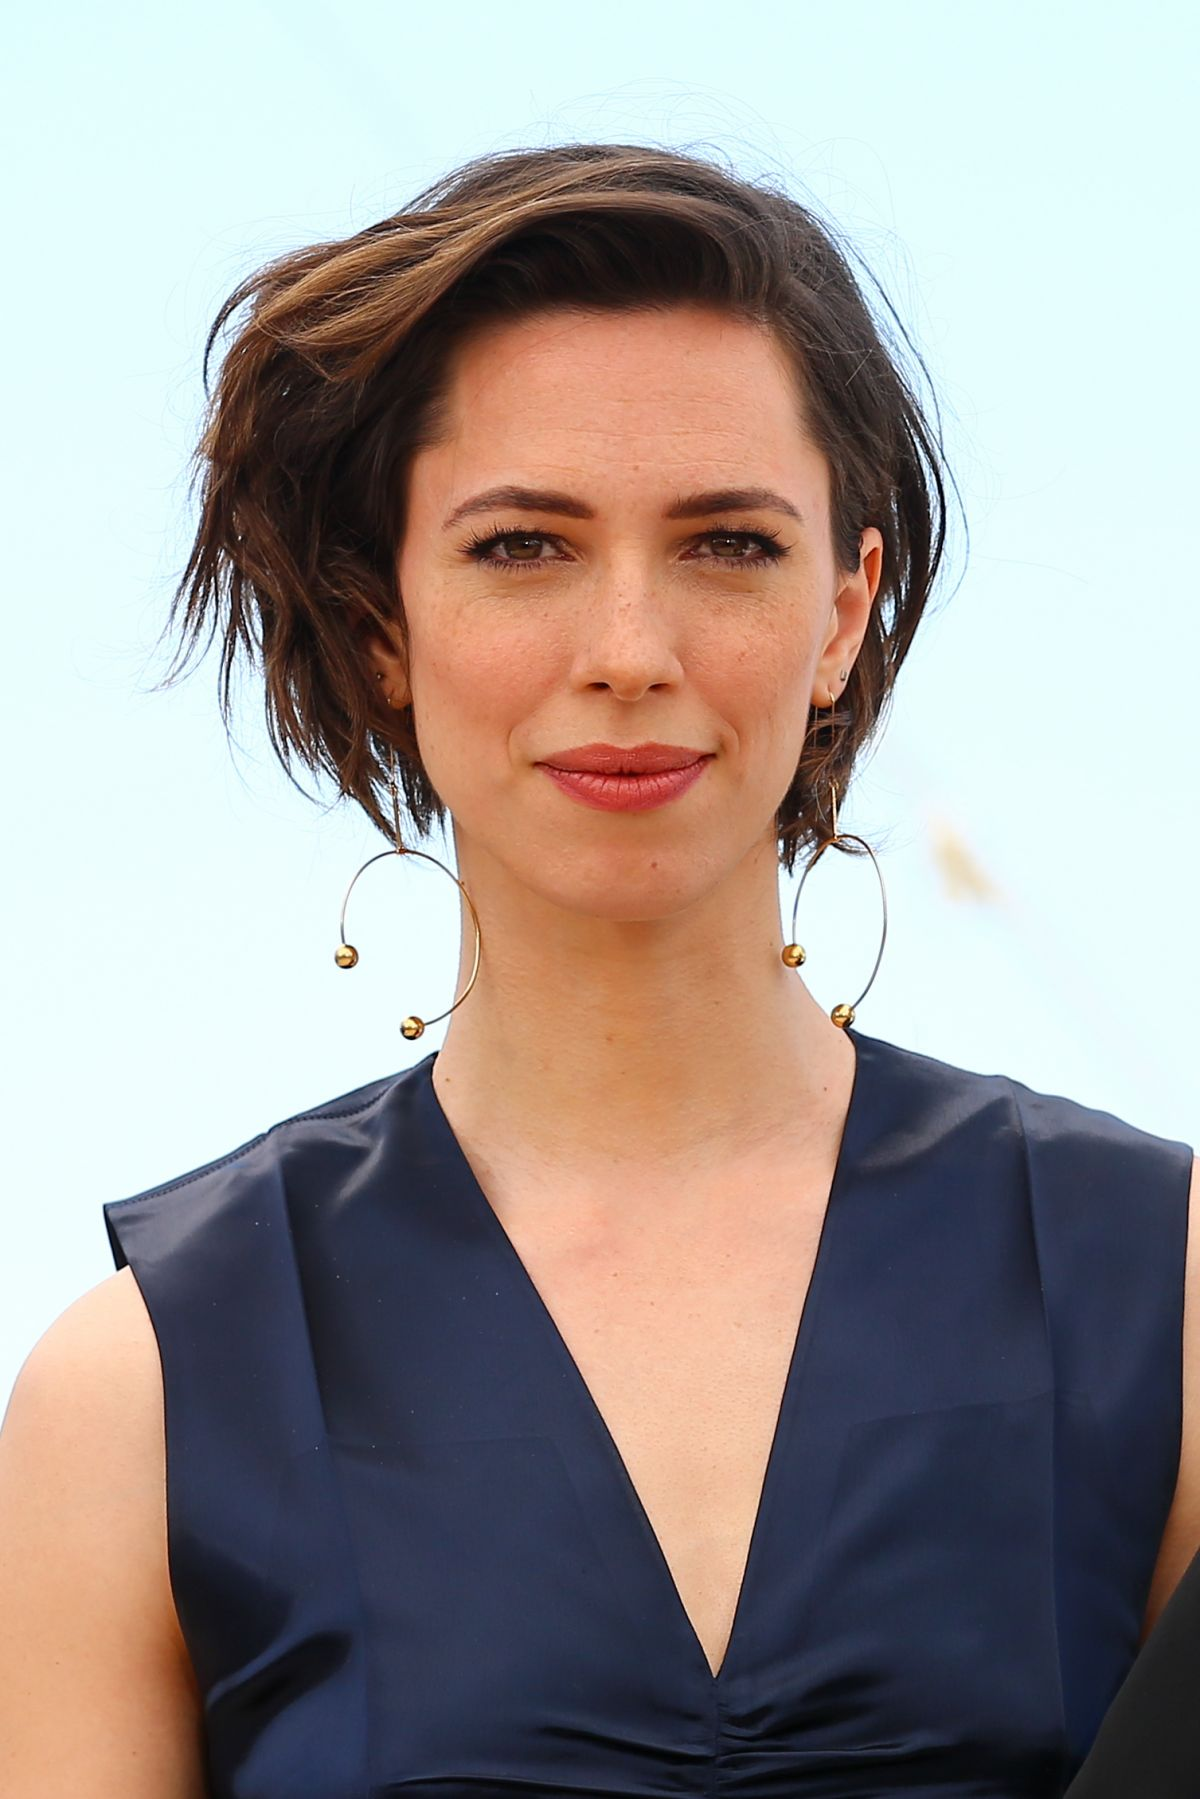 REBECCA HALL at The BFG Photocall at 2016 Cannes Film ...  REBECCA HALL at...